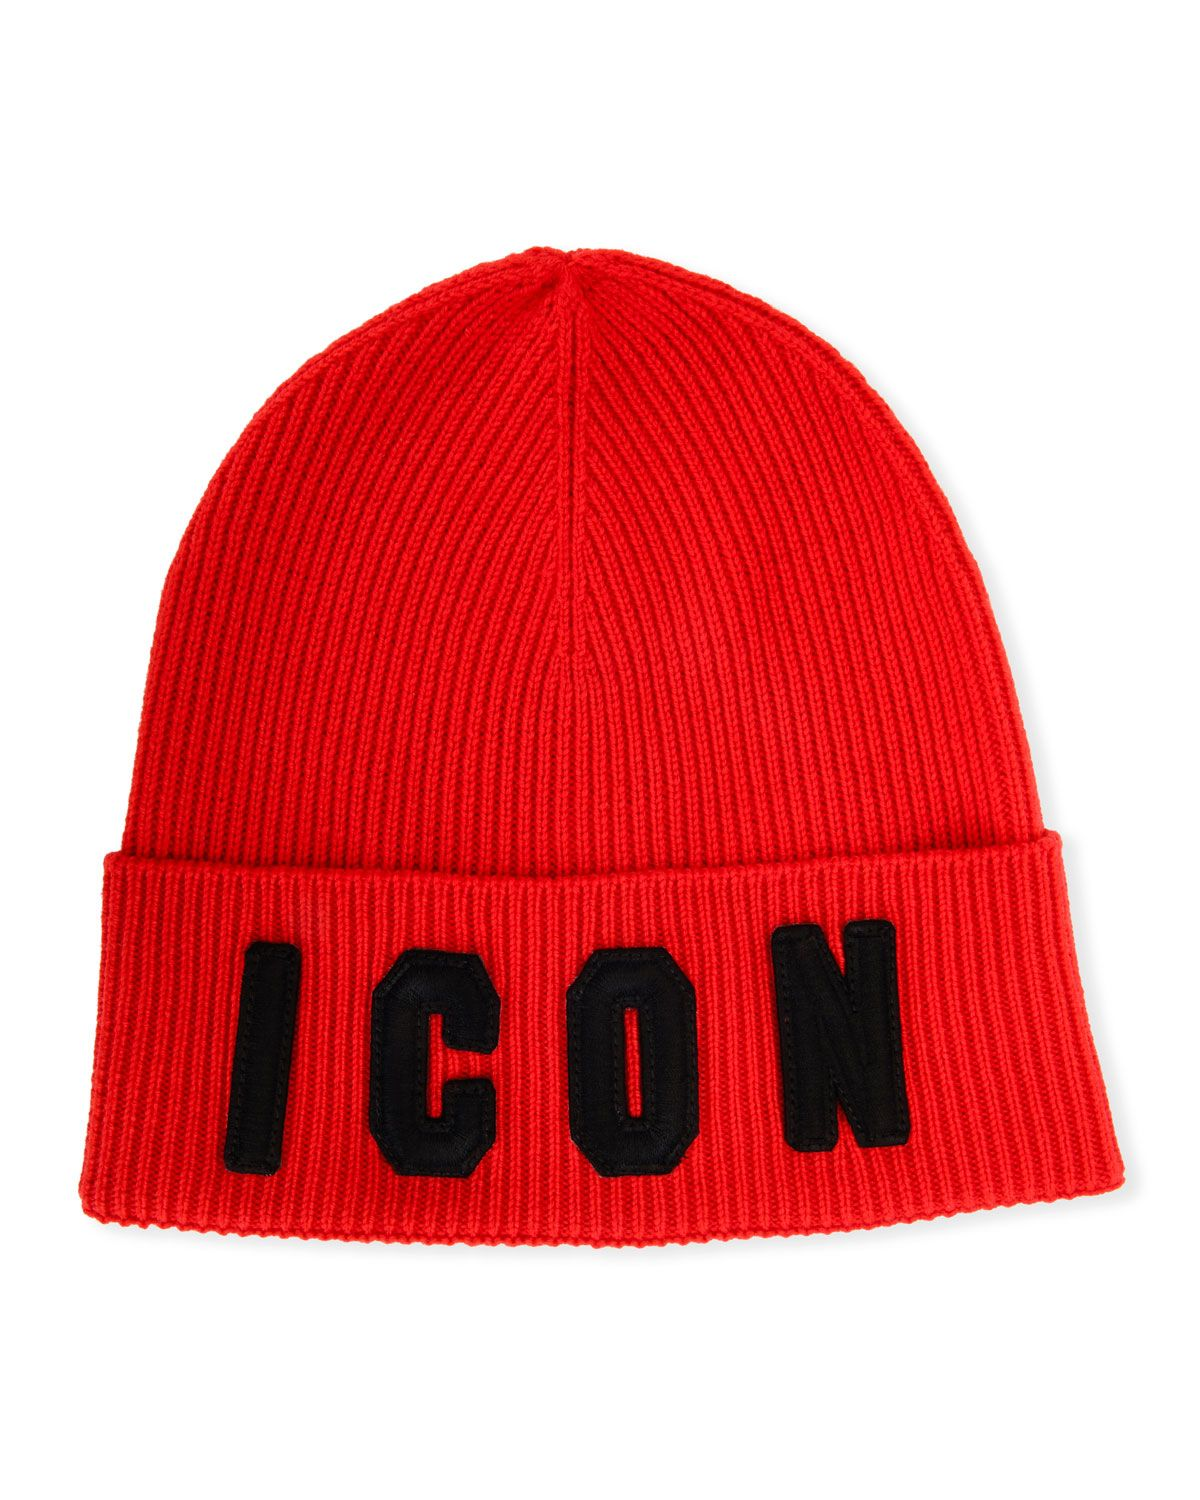 1ed01b7ebe DSQUARED2 MEN'S ICON PATCHED-FRONT WOOL BEANIE HAT, RED/BLACK. #dsquared2